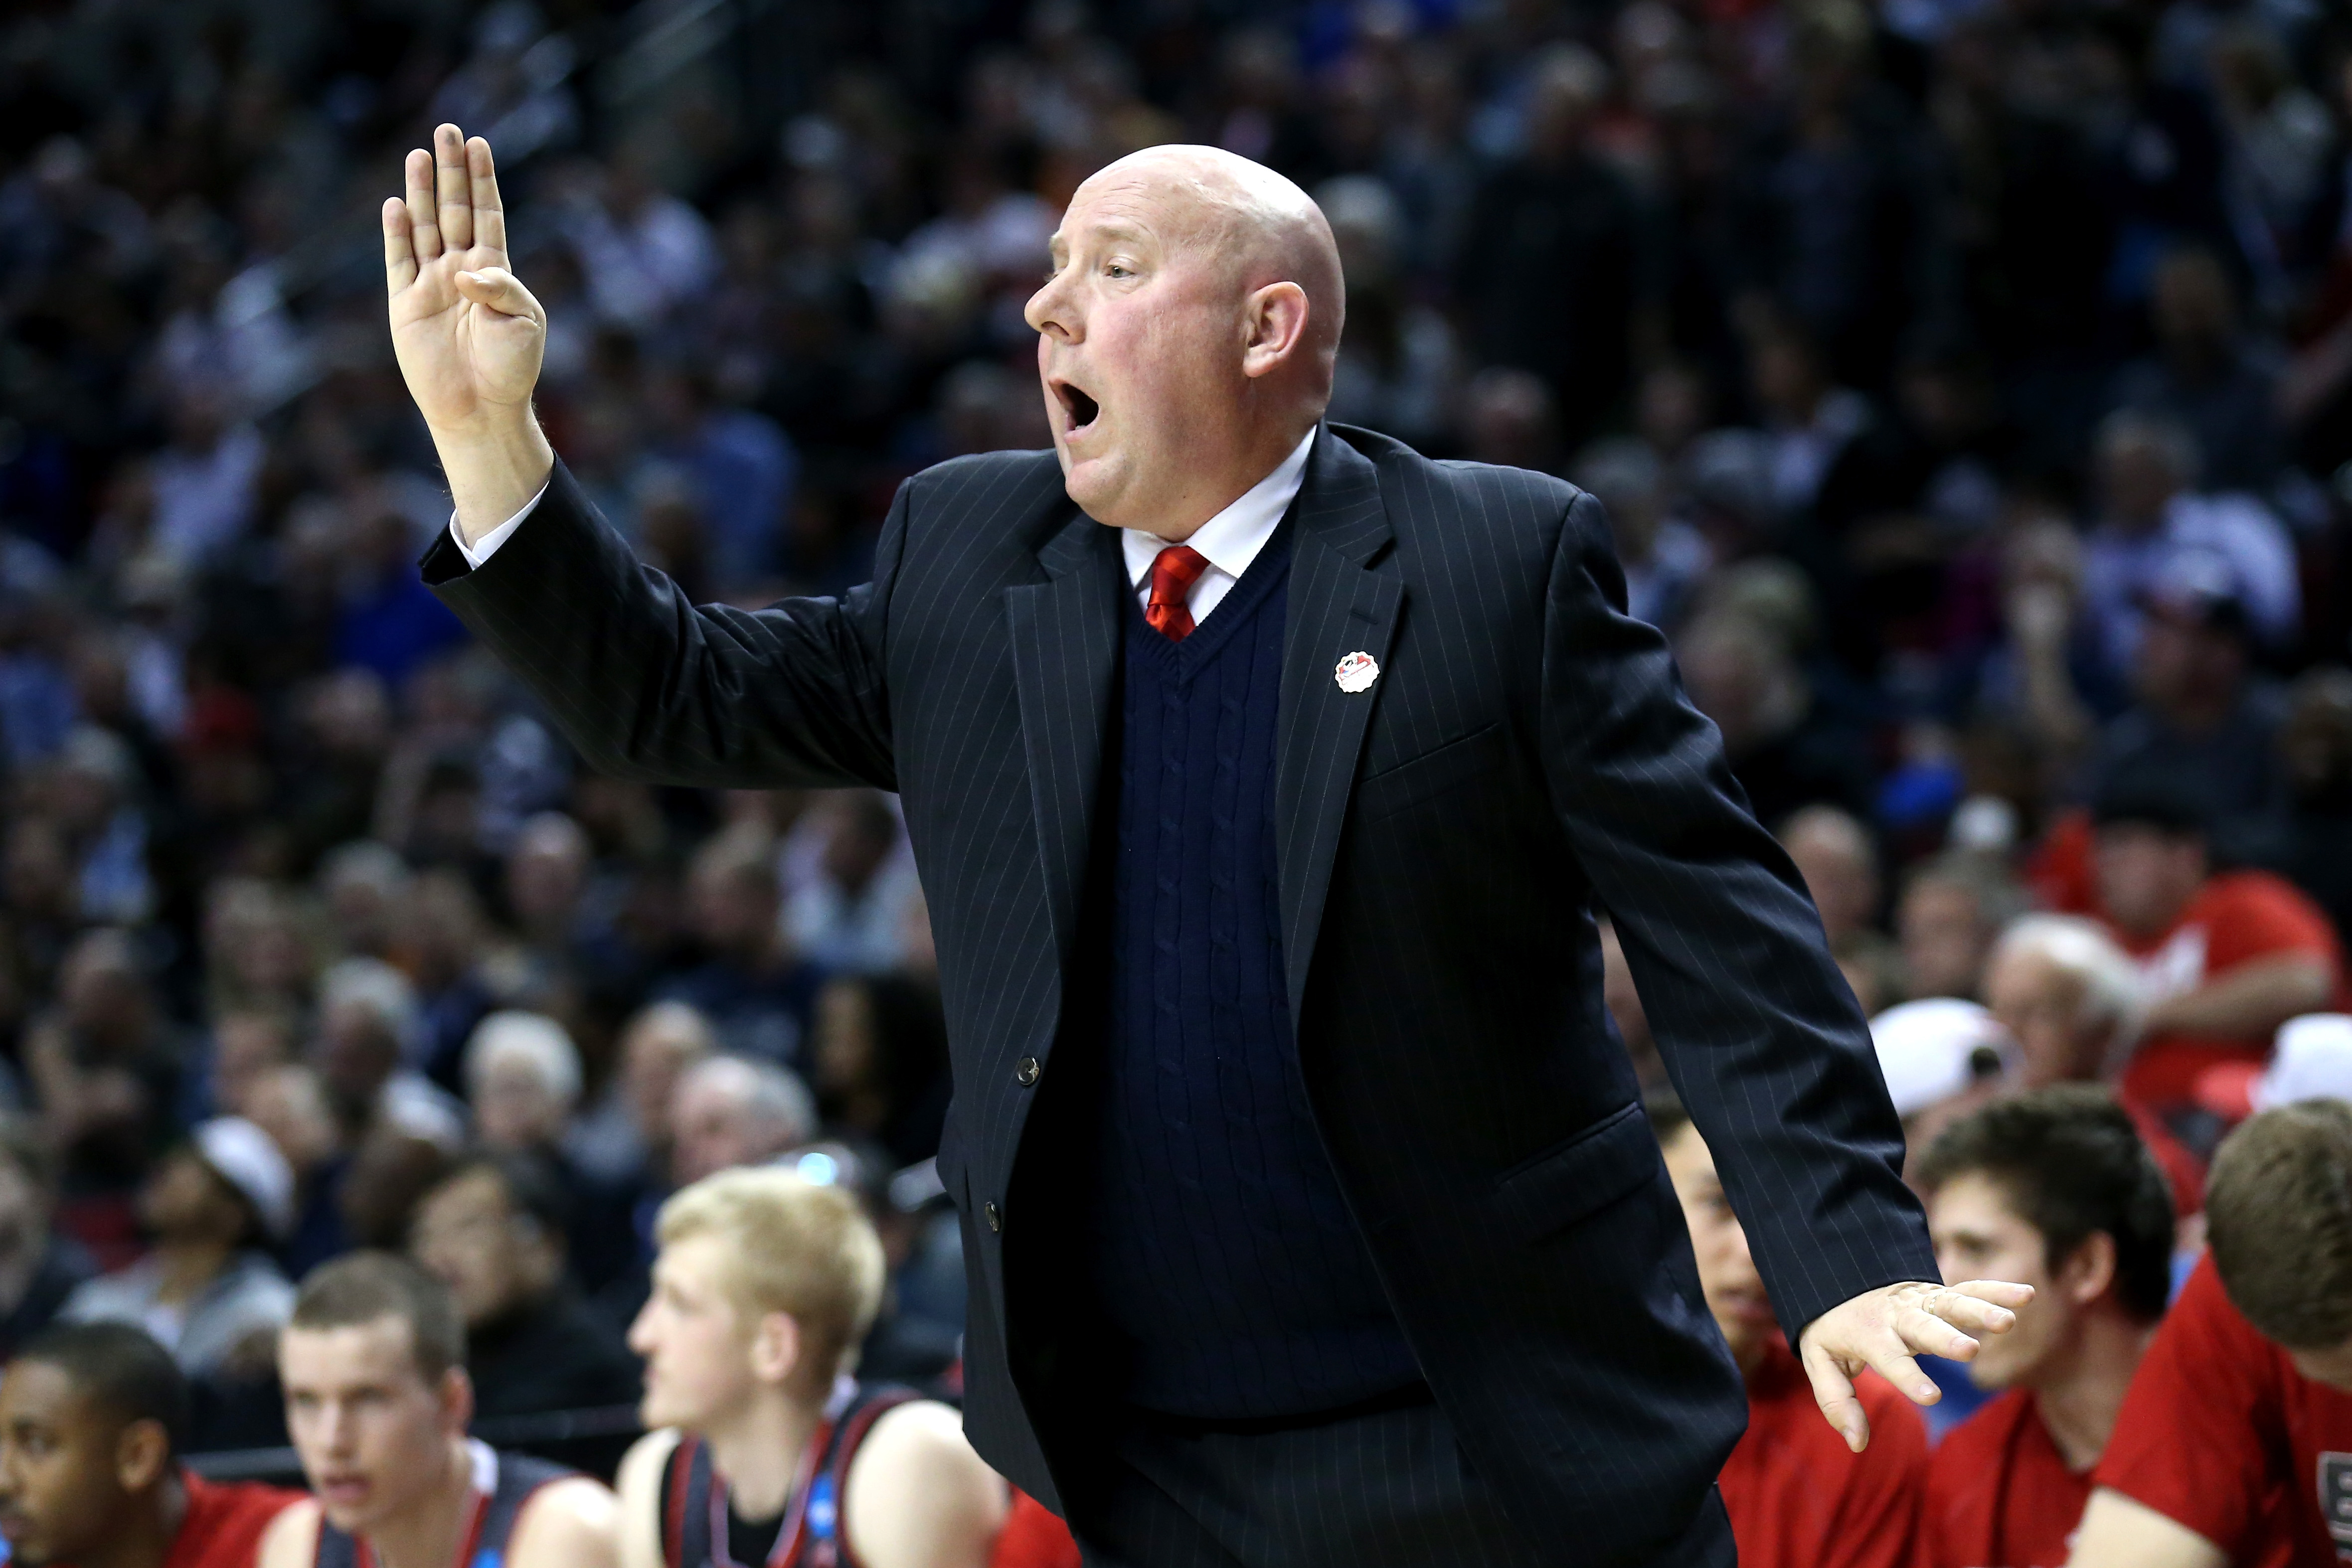 Jim Hayford and the Eagles each celebrated milestones Wednesday night in Cheney, Wash.